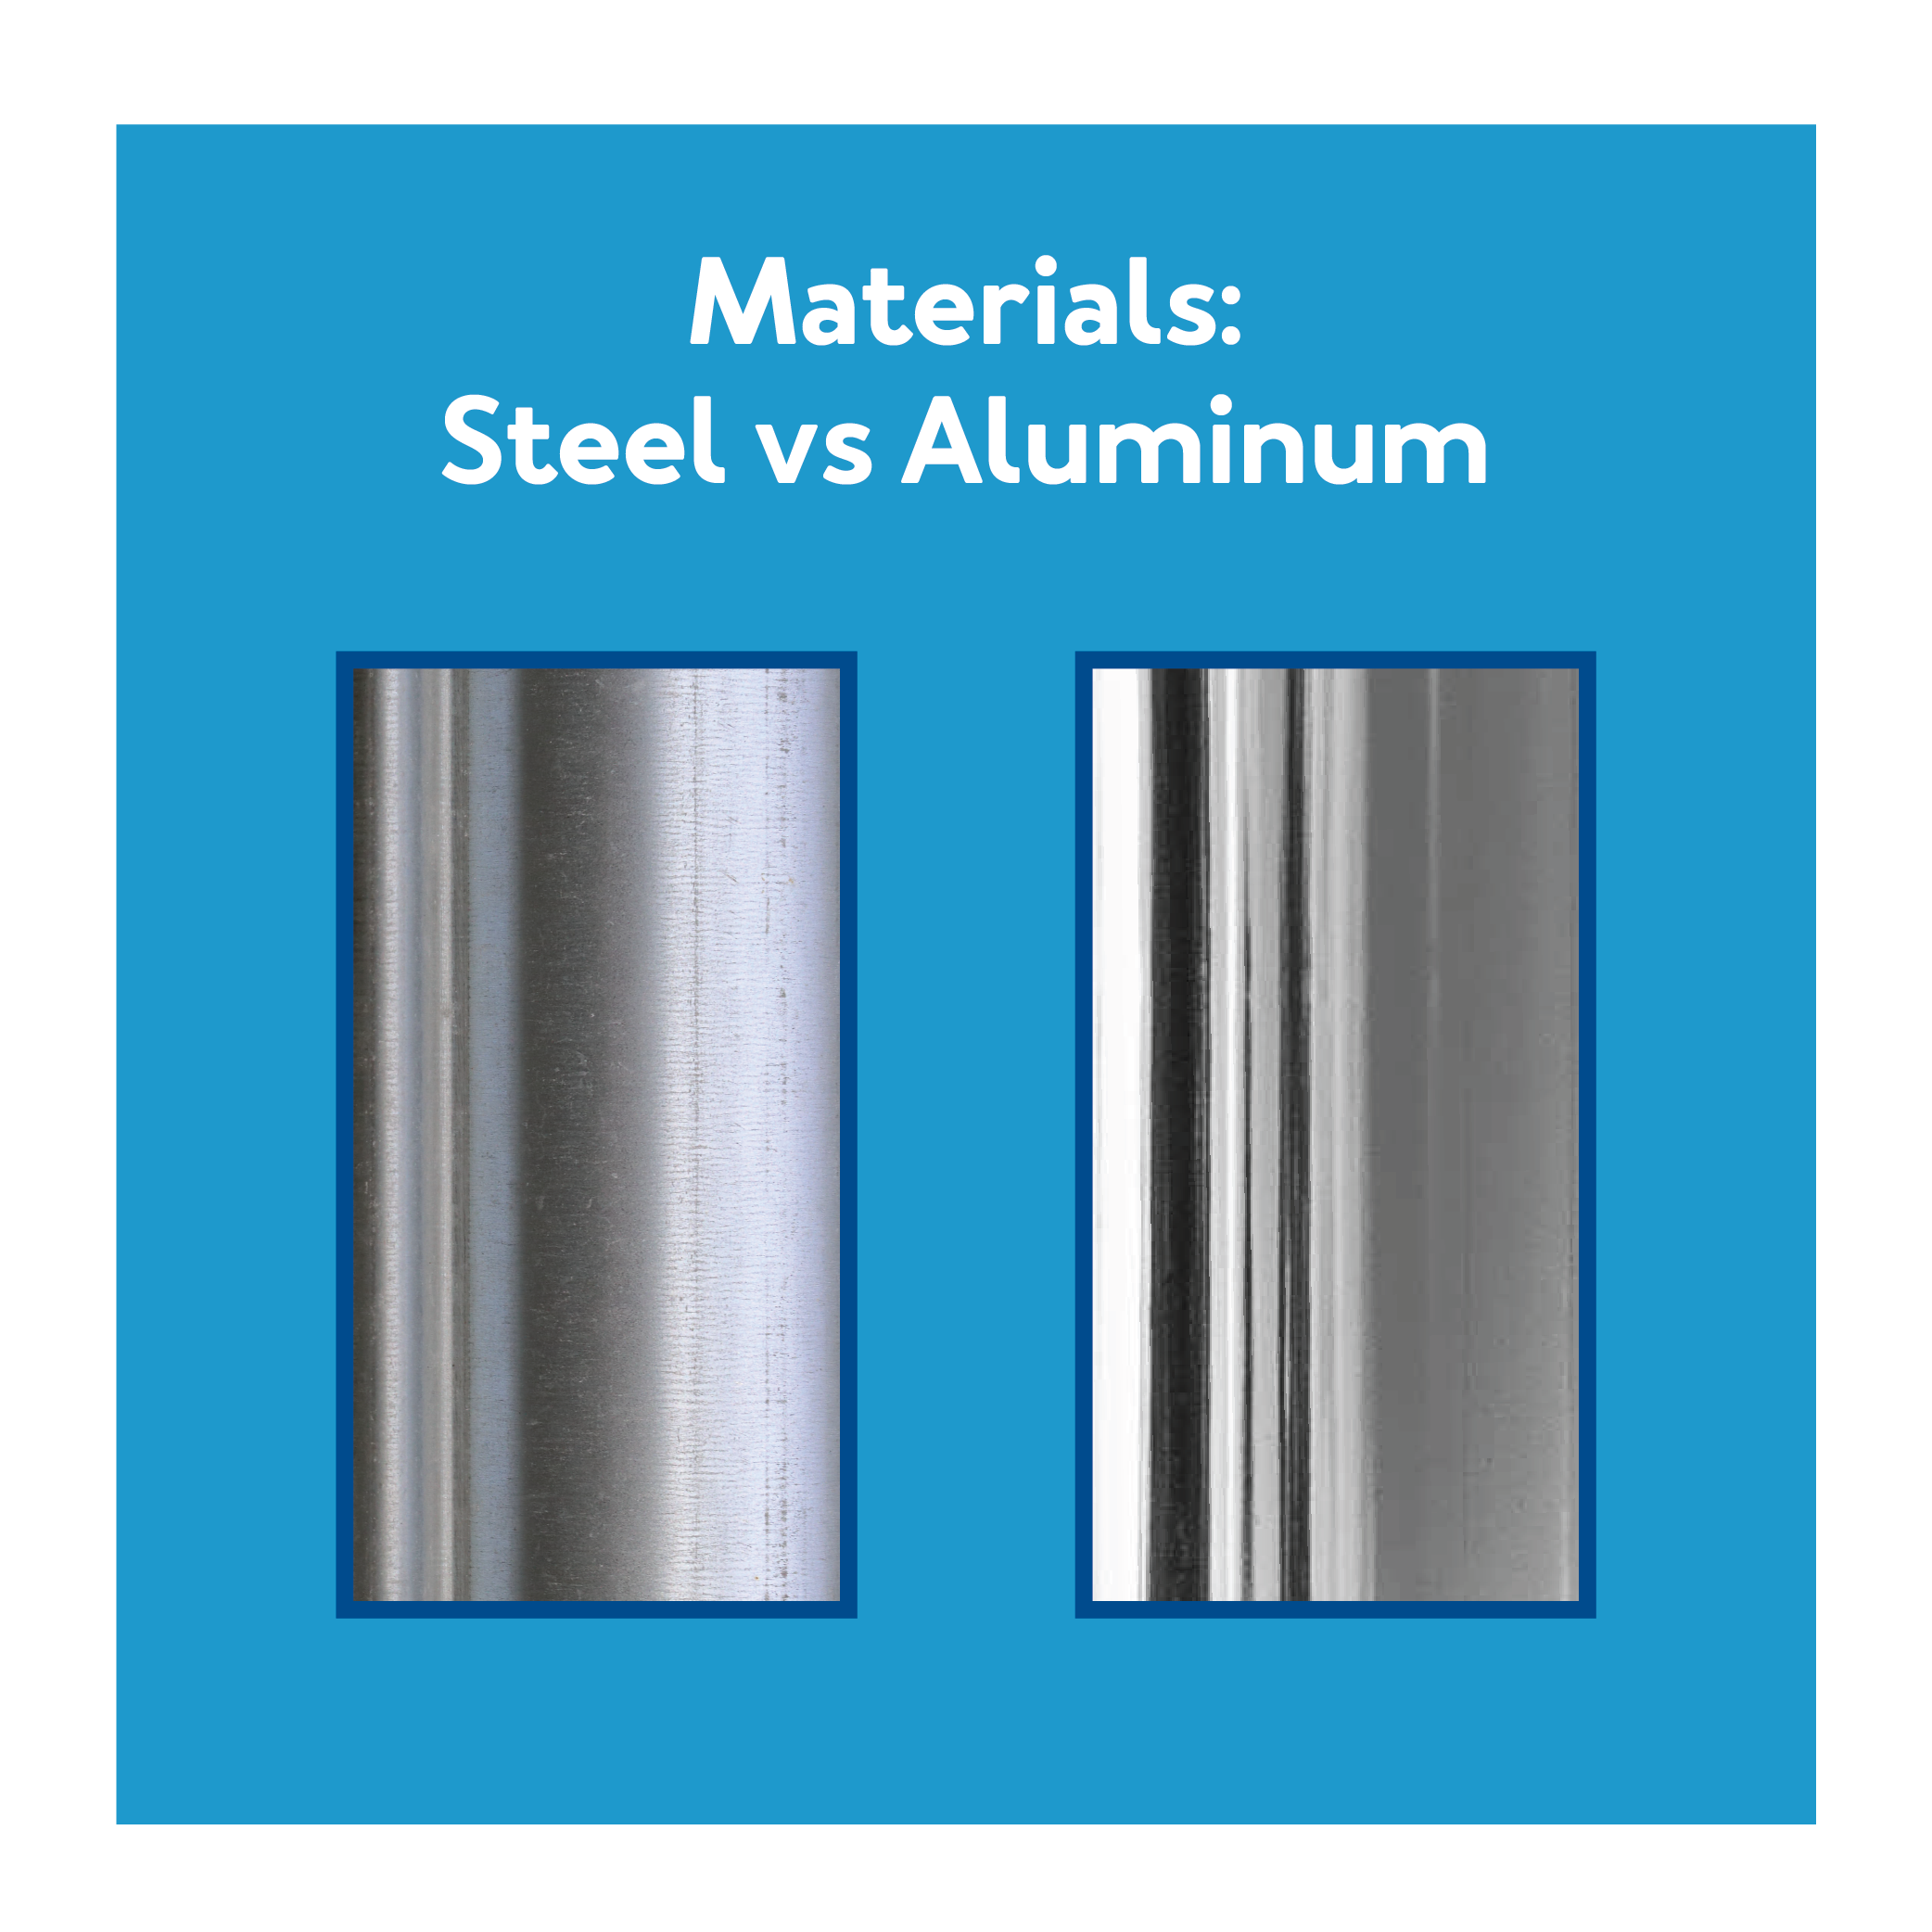 Transport Chair Materials: Steel vs Aluminum